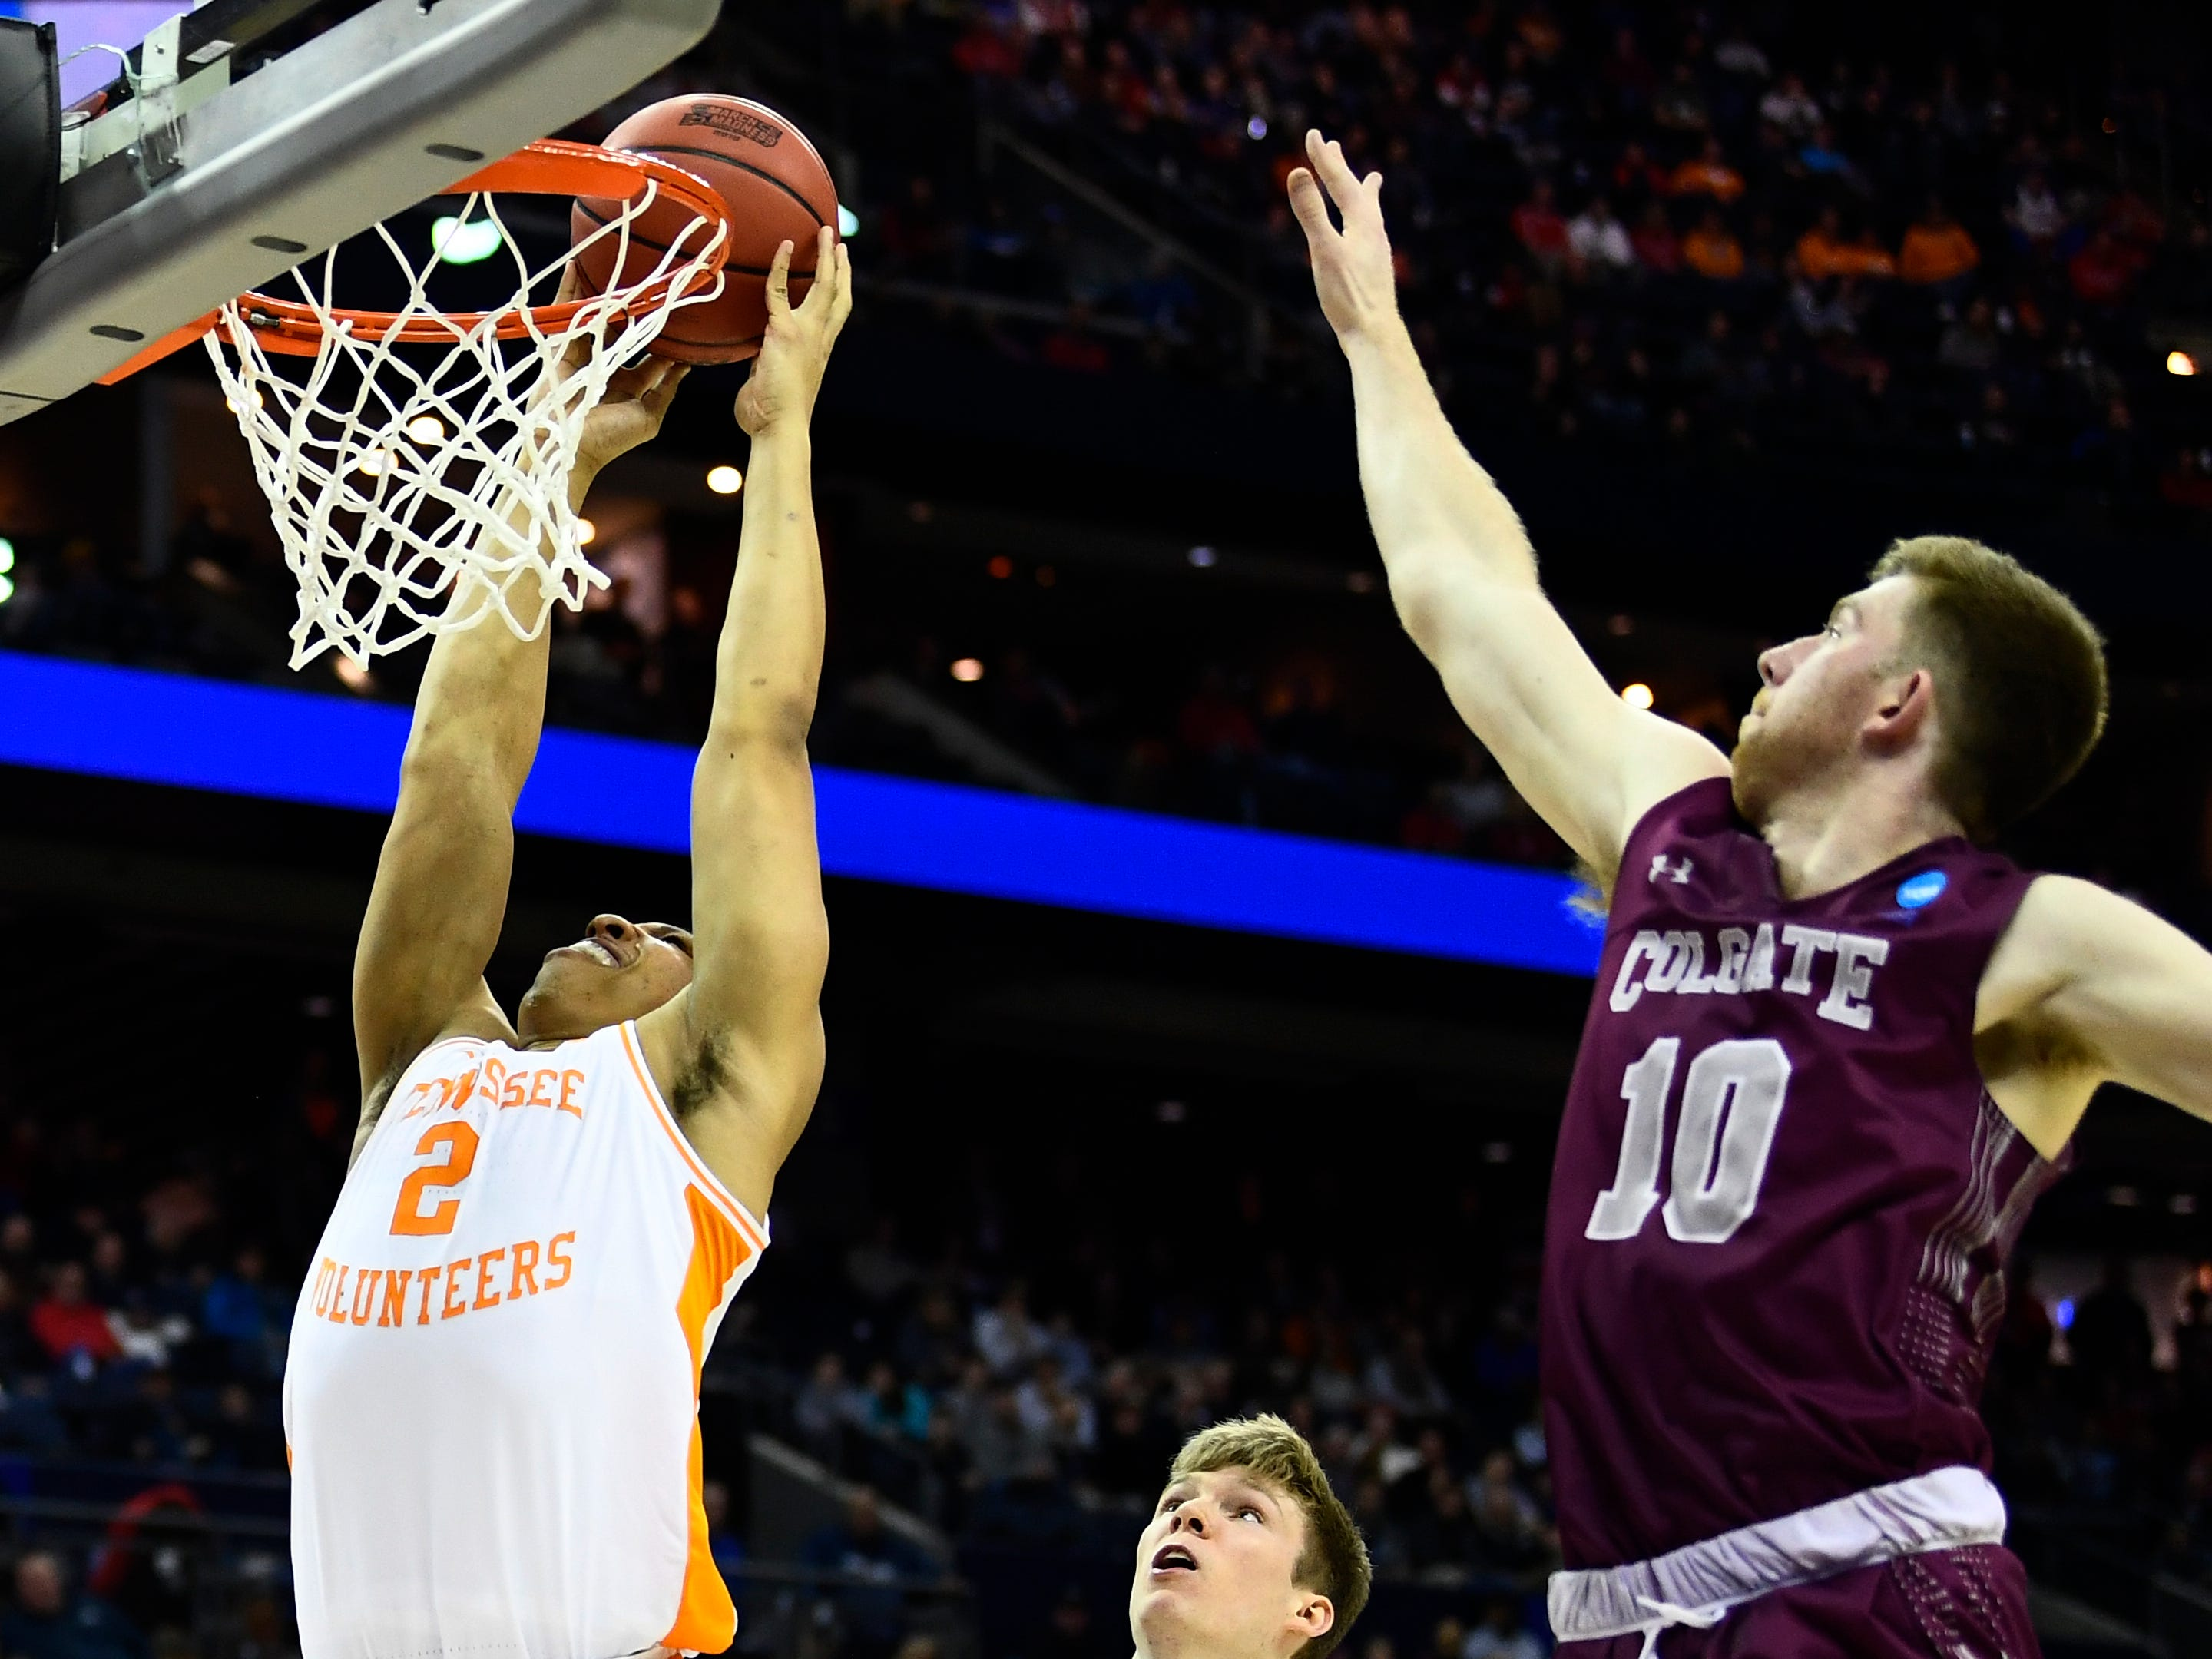 Tennessee forward Grant Williams (2) attempts a dunk defended by Colgate forward Will Rayman (10) during their first round game in the NCAA Tournament at Nationwide Arena in Columbus, Ohio, on Friday, March 22, 2019.